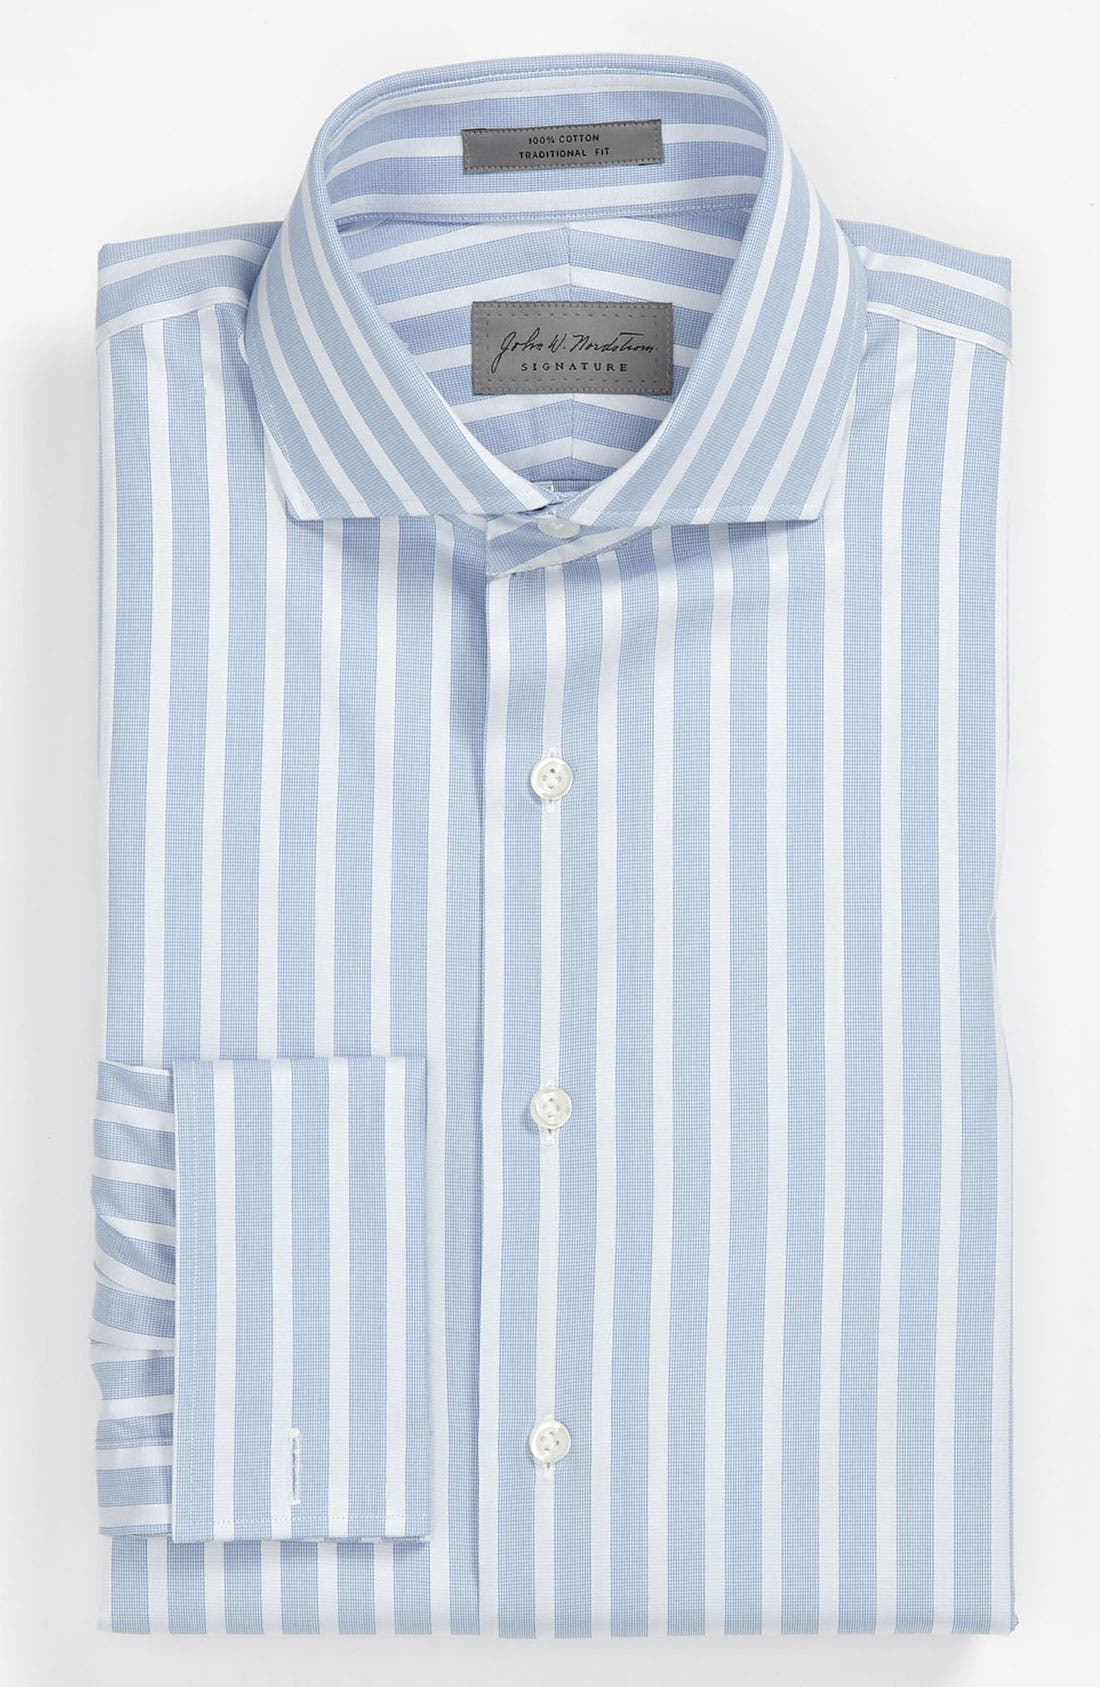 Main Image - John W. Nordstrom Signature Traditional Fit Dress Shirt